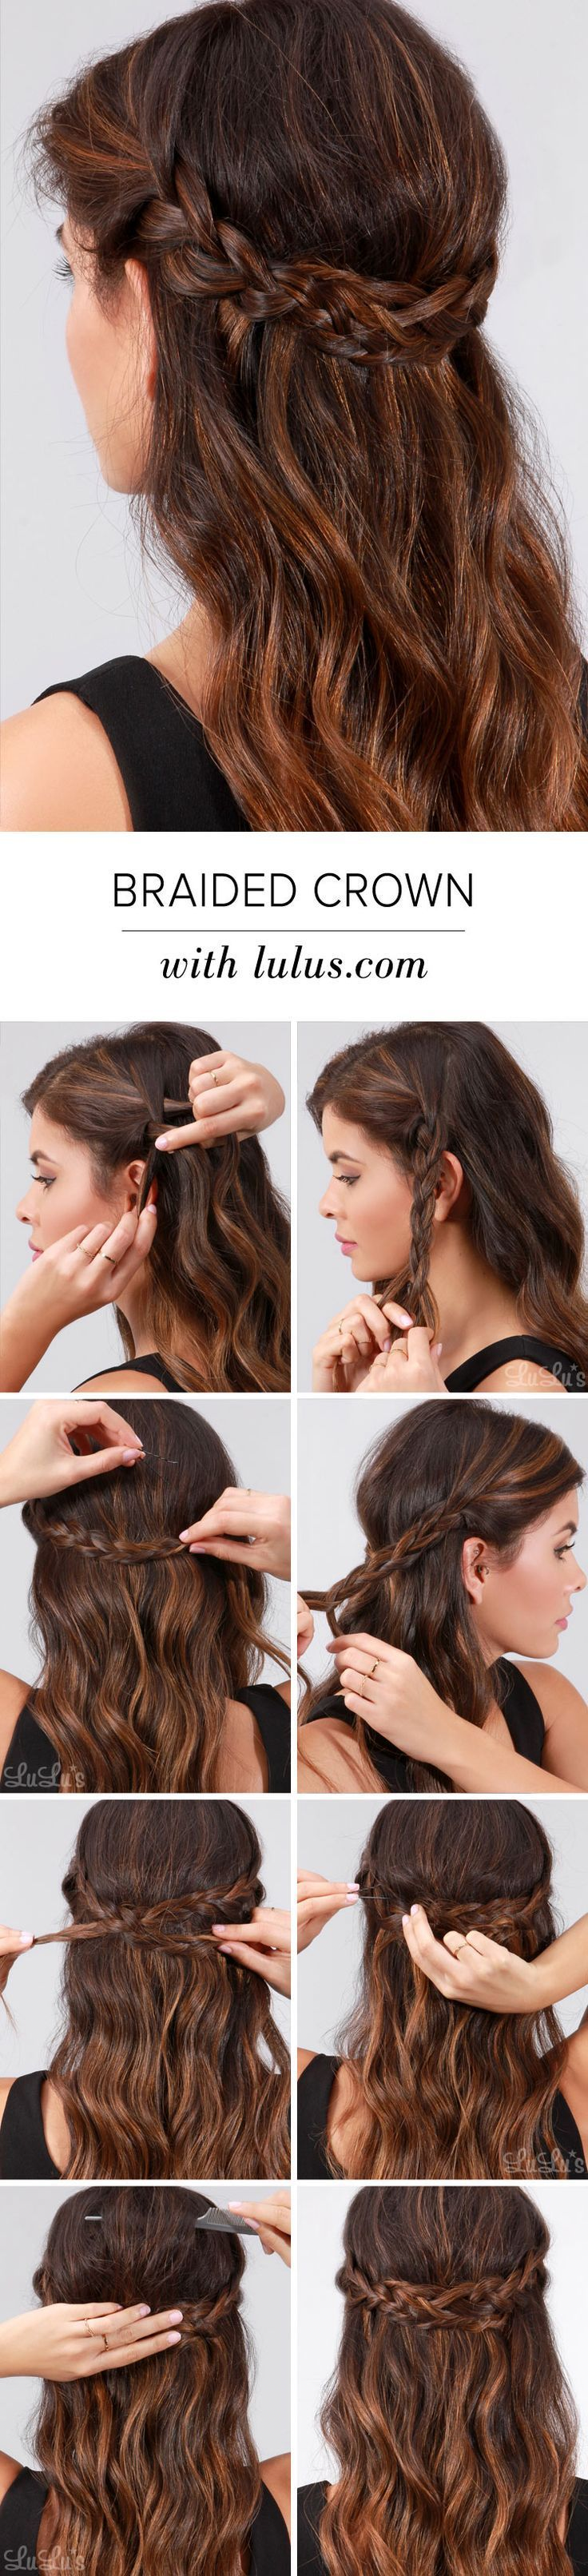 1971 best pretty hairstyles images on Pinterest